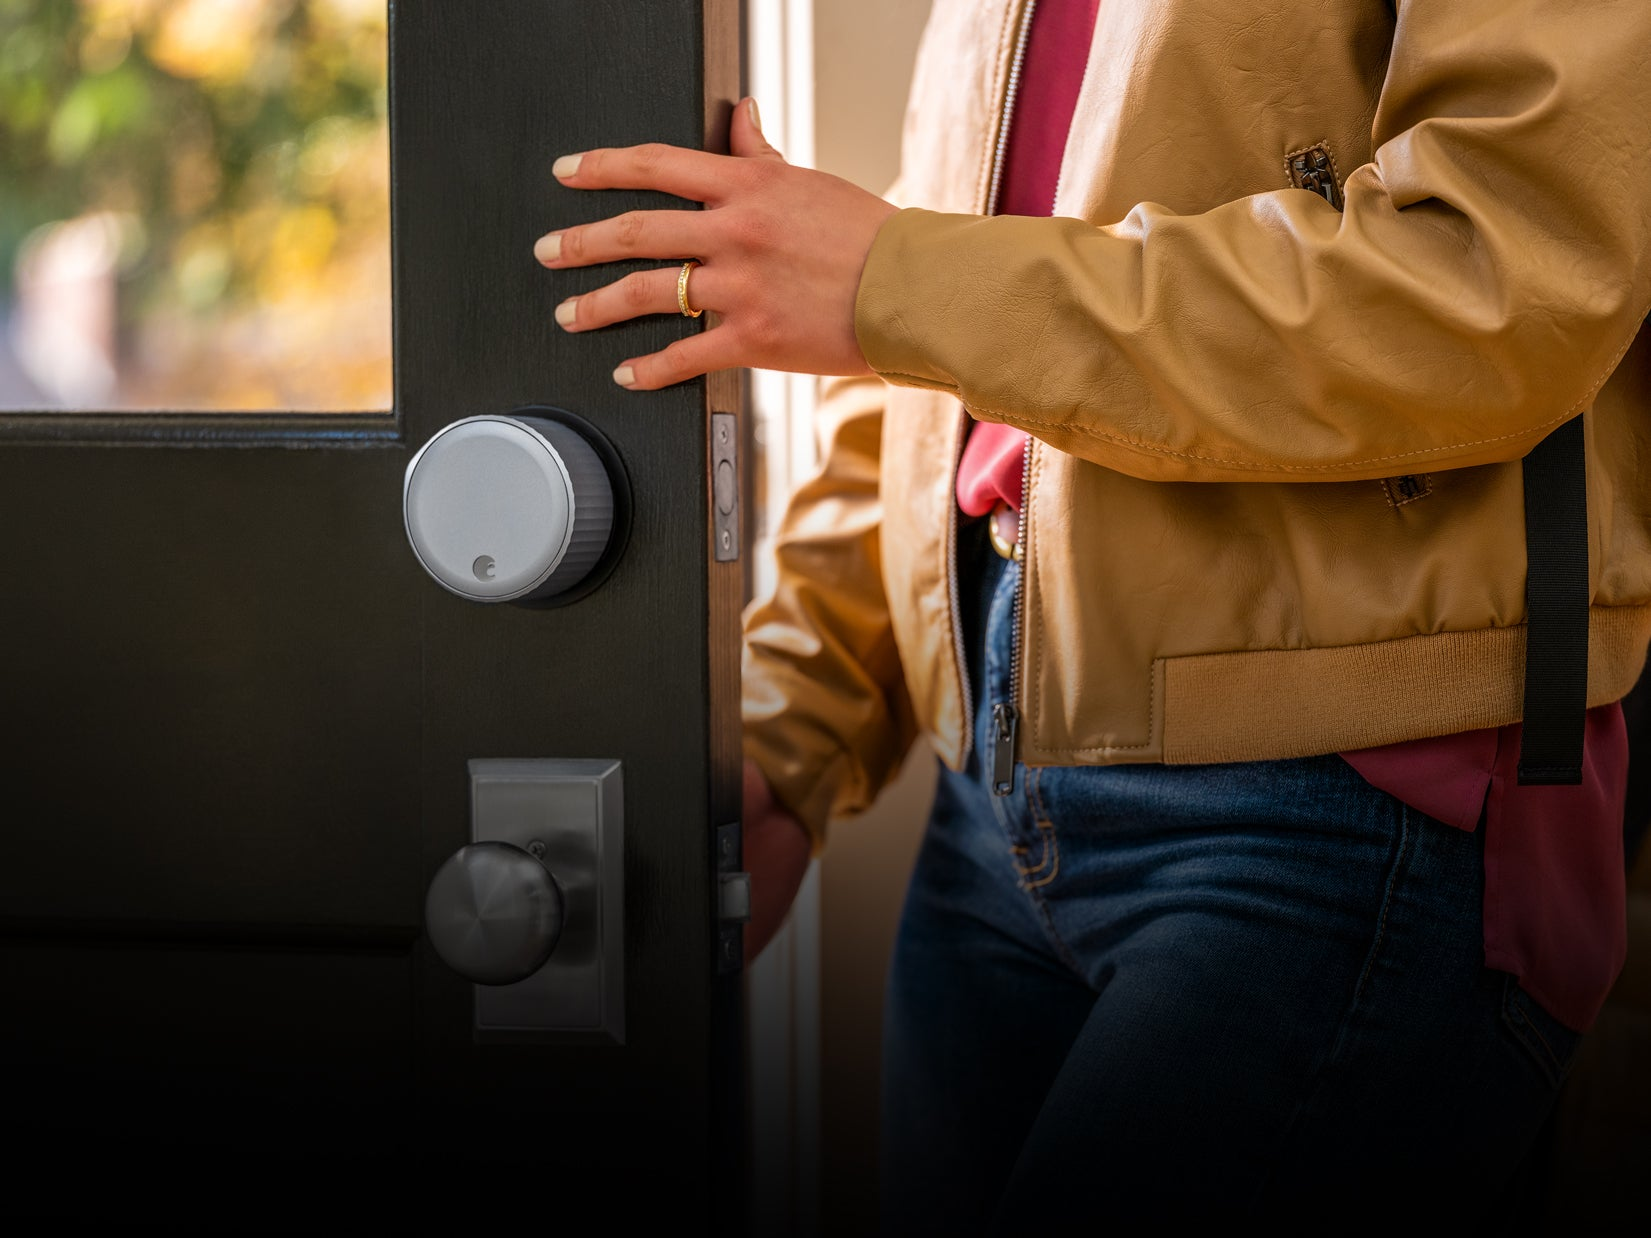 Woman Opening Door with WI-FI Lock